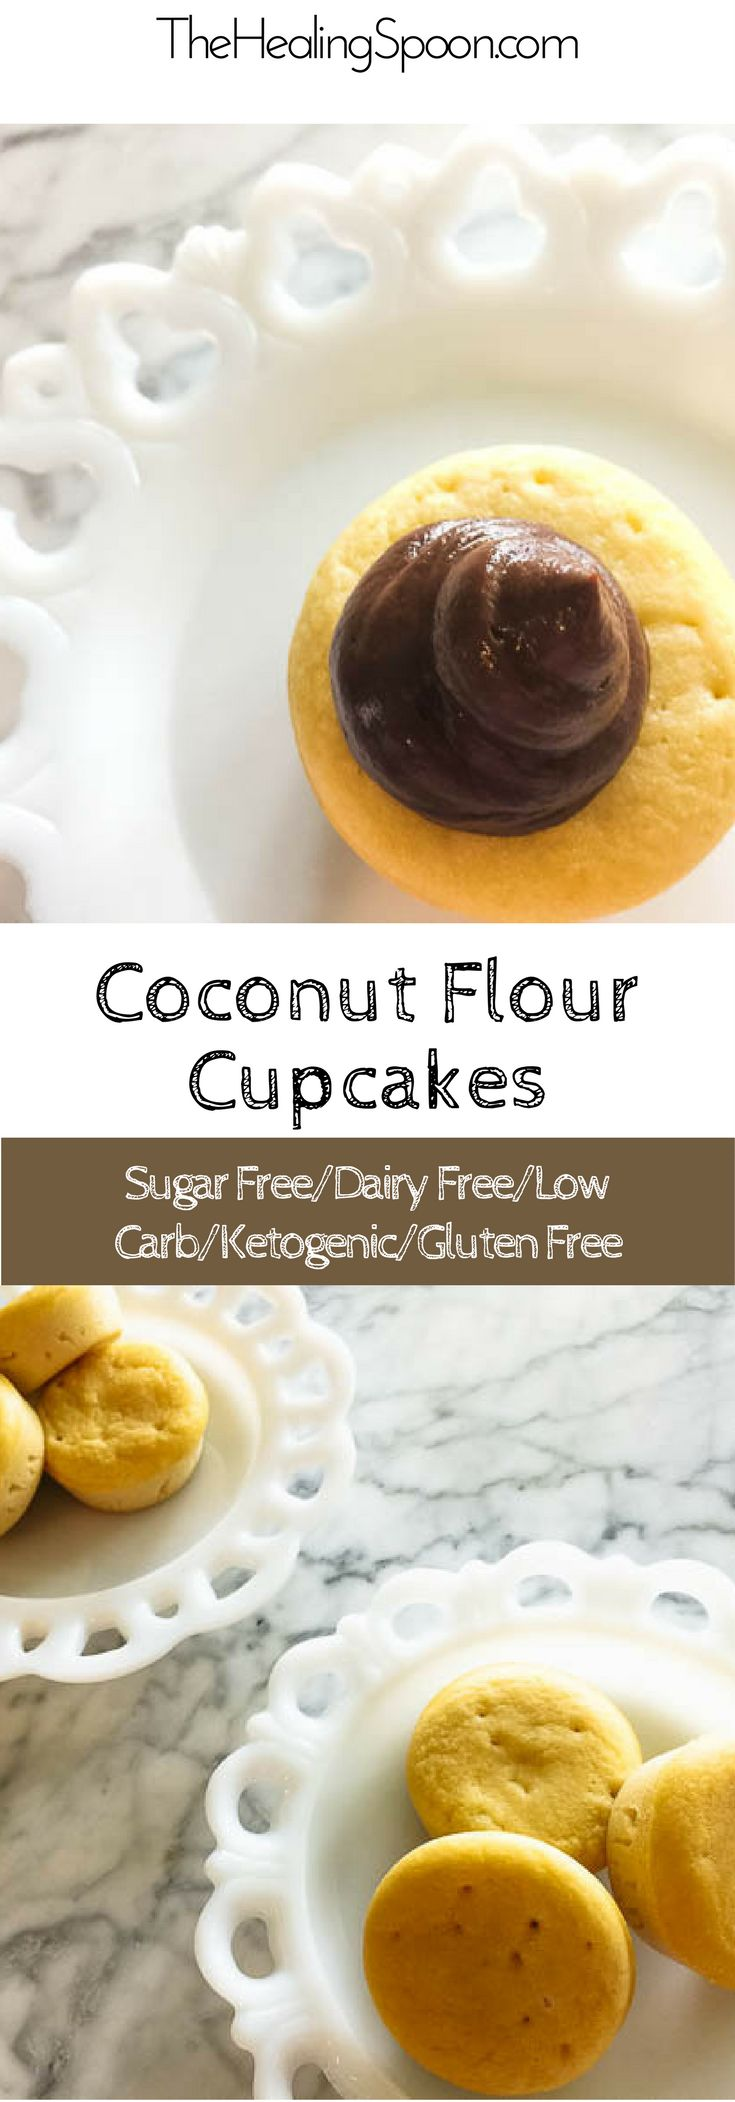 sugar free, gluten free, dairy free, low carb, keto coconut flour vanilla cupcakes with chocolate frosting